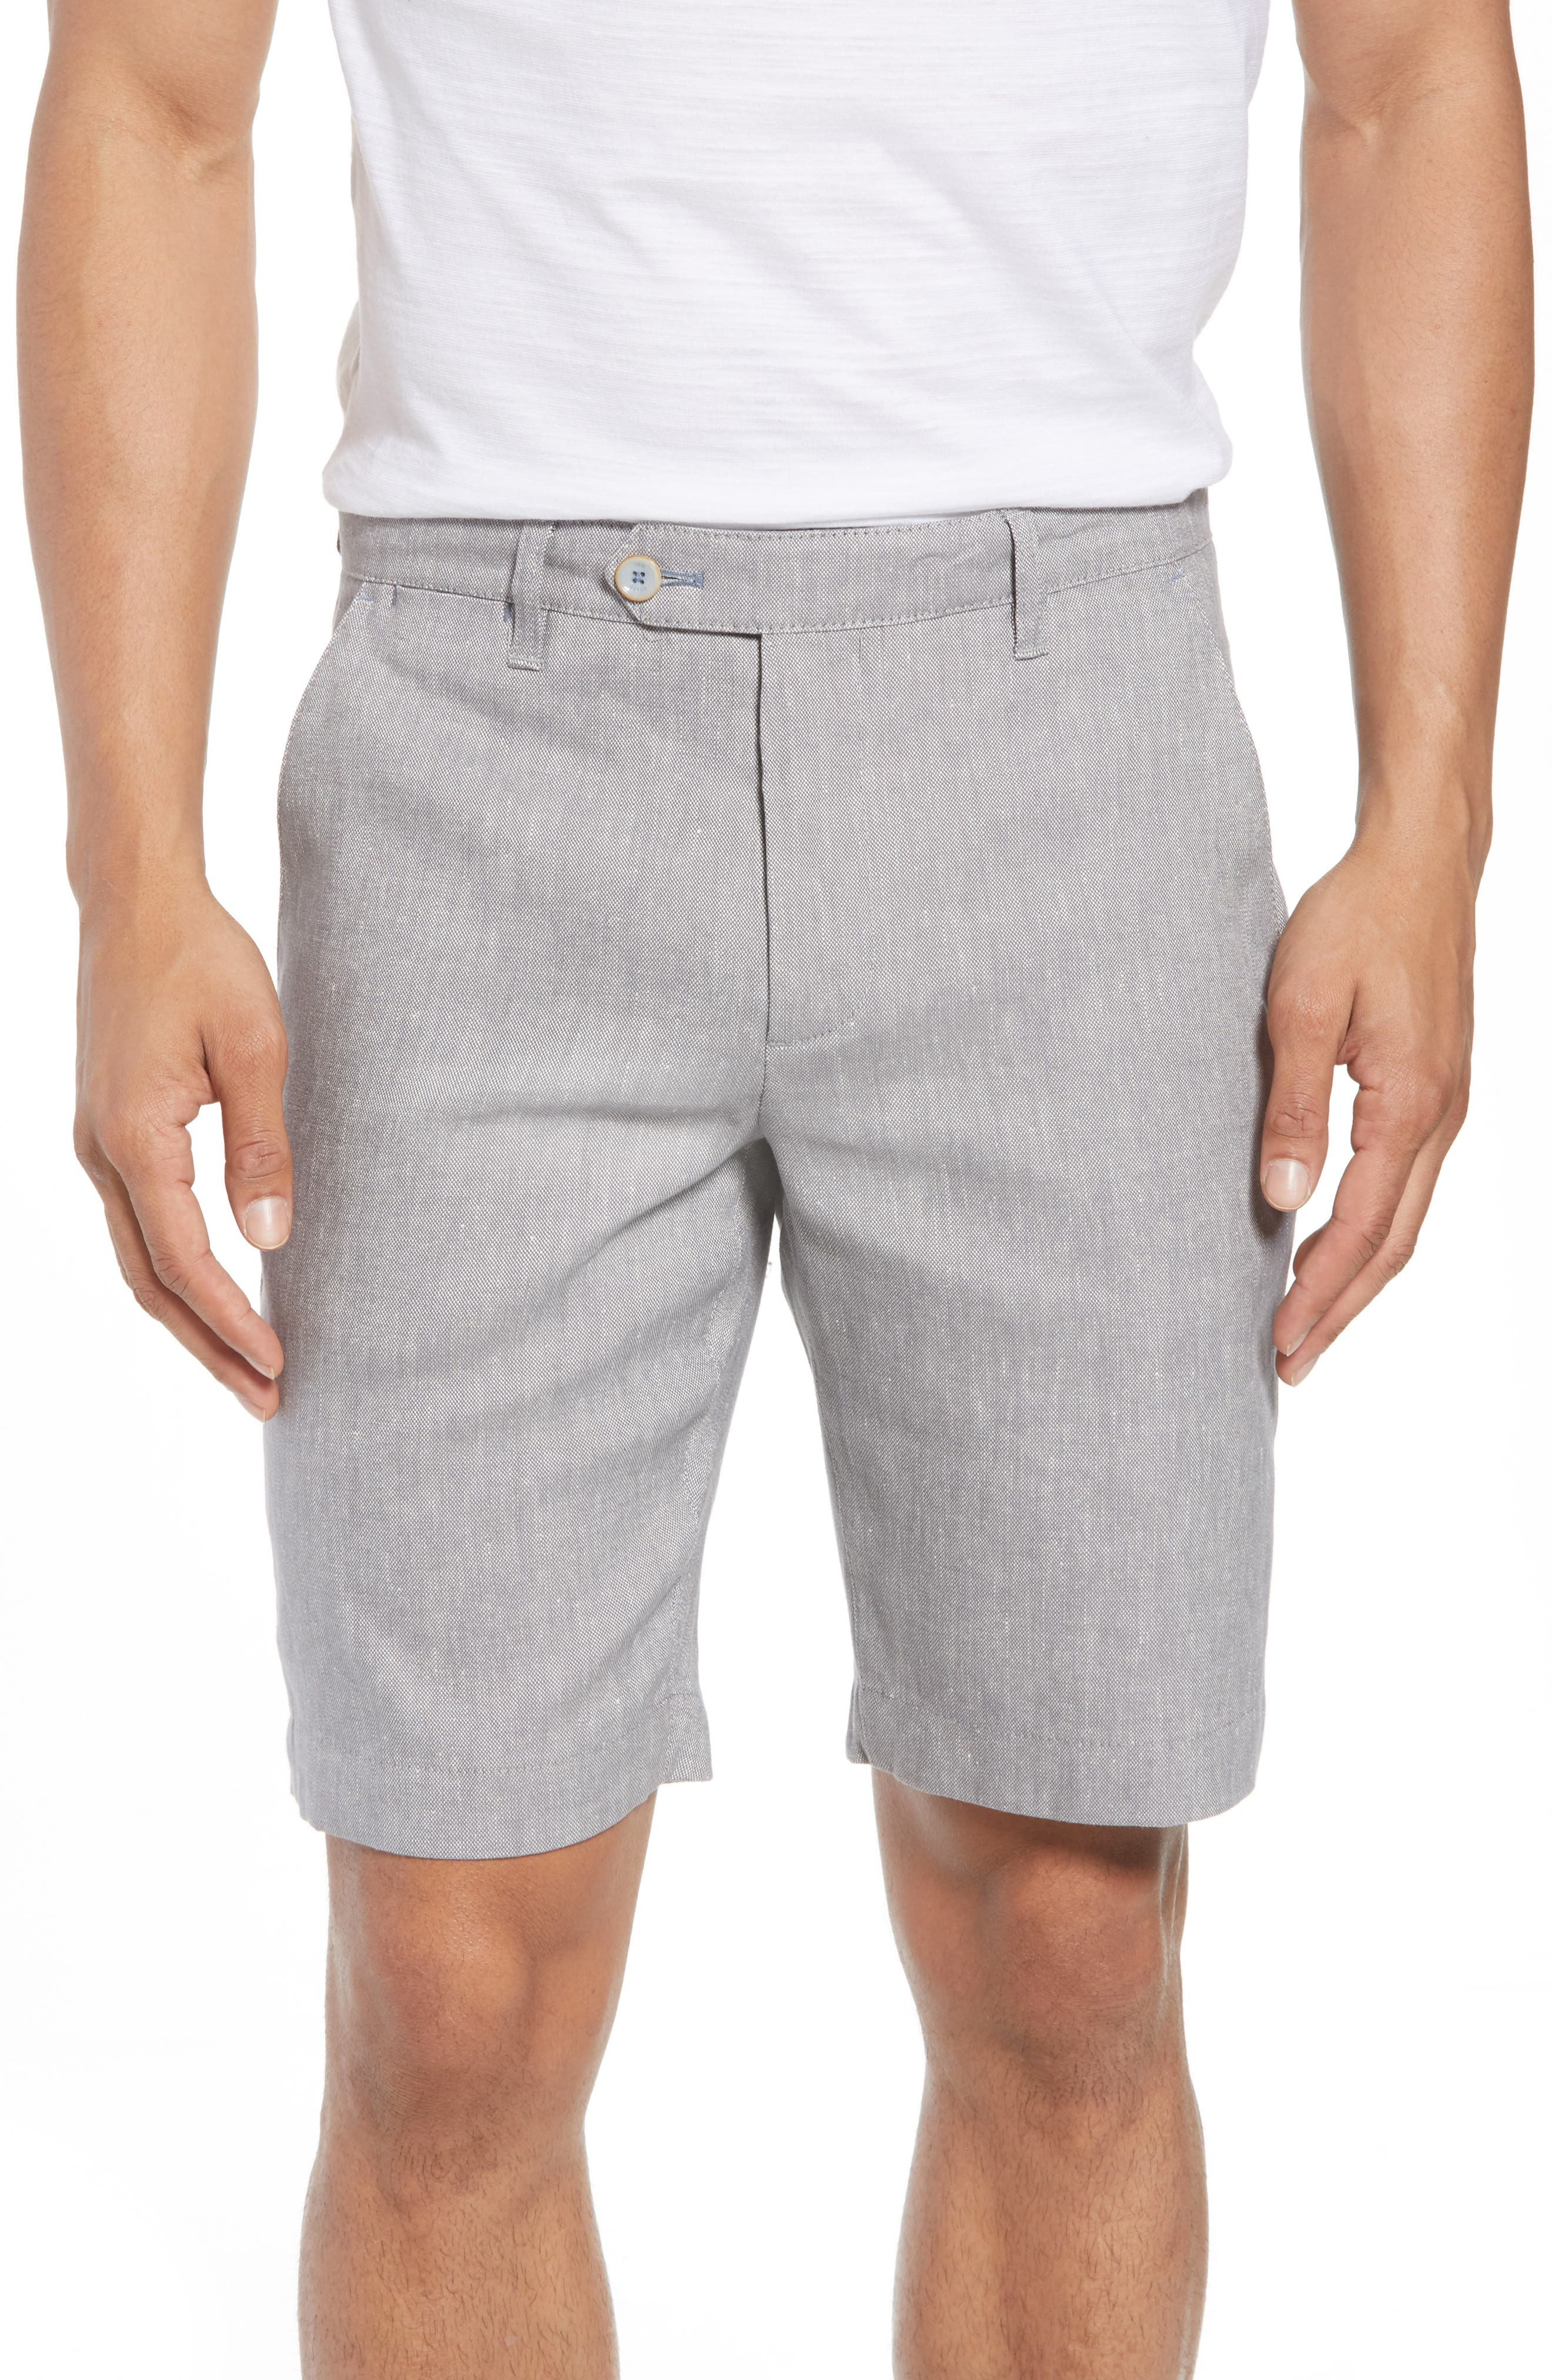 Newshow Flat Front Stretch Cotton Blend Shorts,                         Main,                         color, GREY